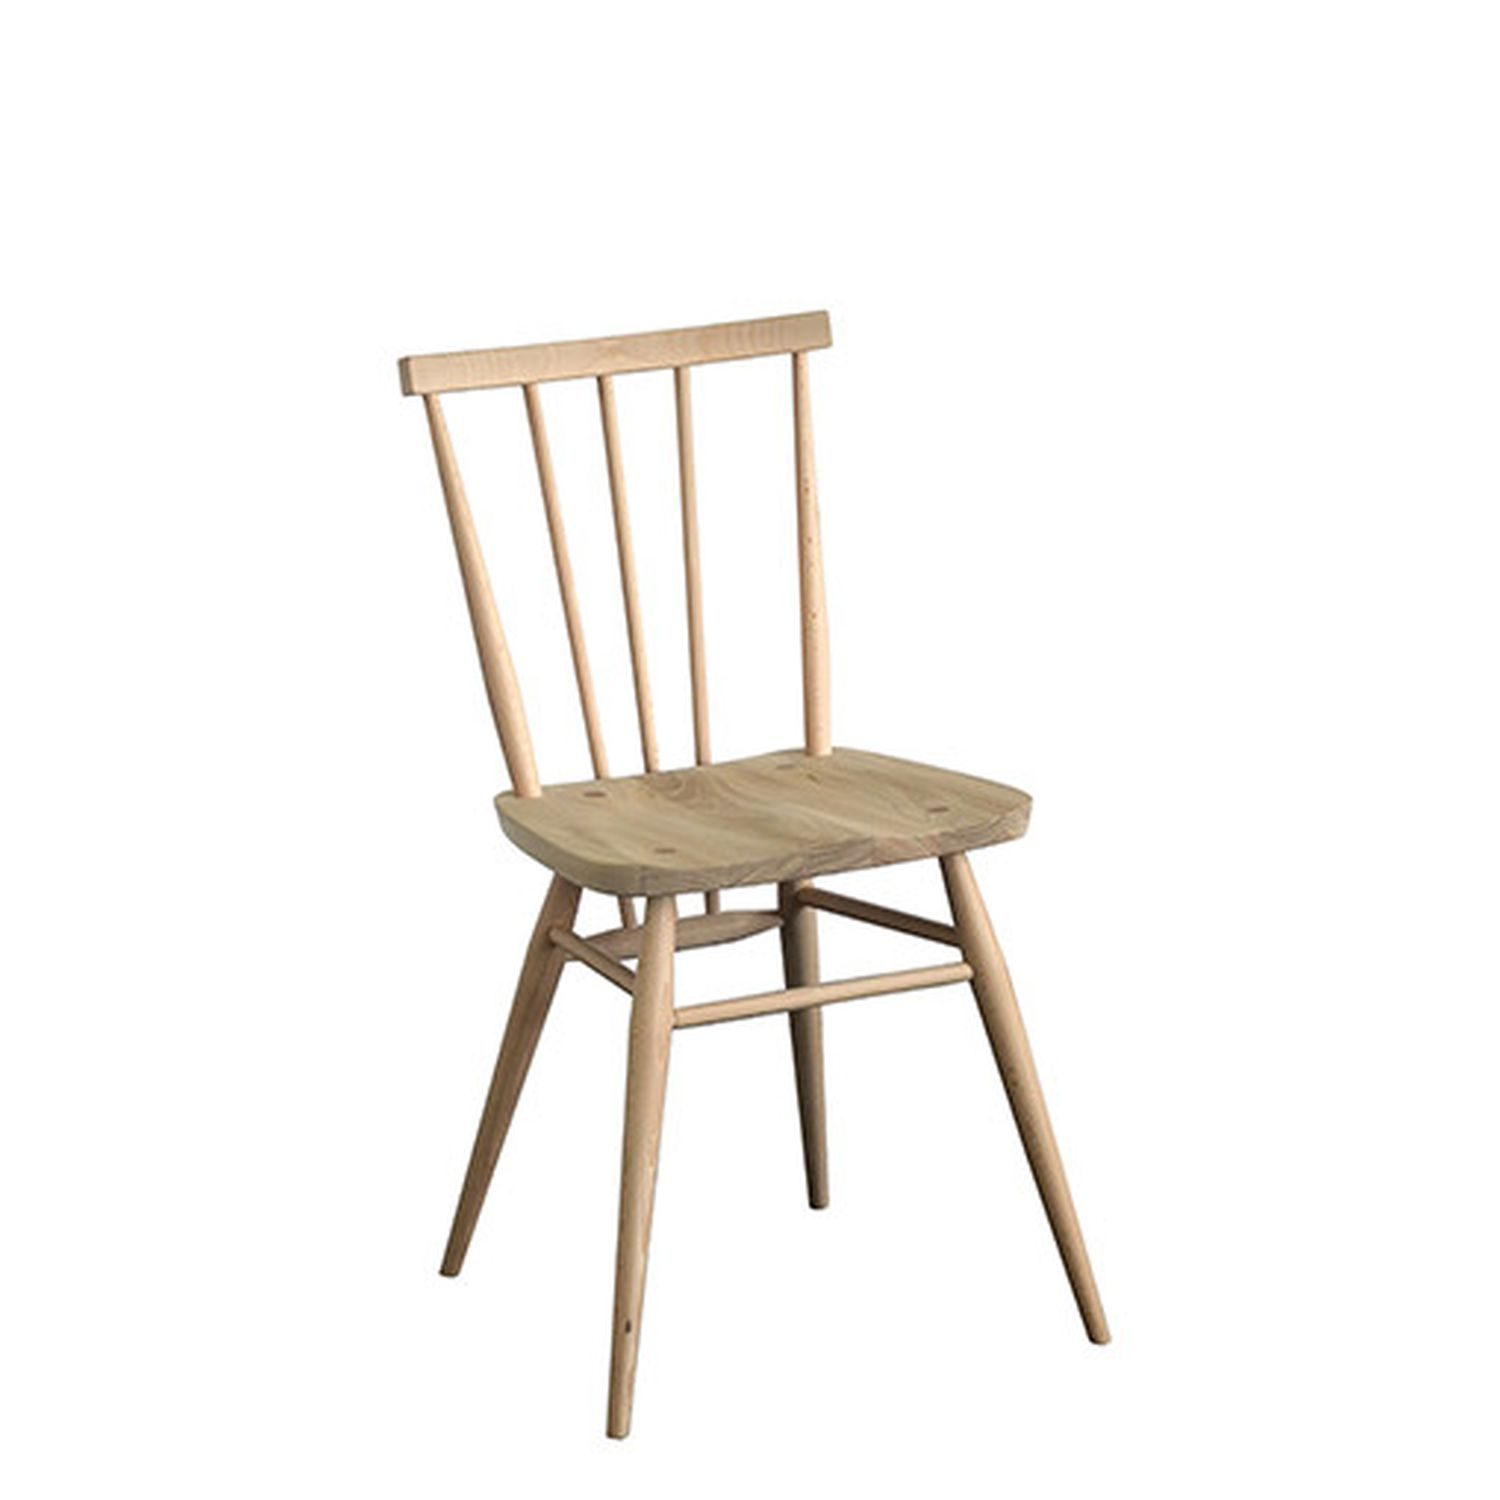 Image of Ercol Originals All-Purpose Dining Chair